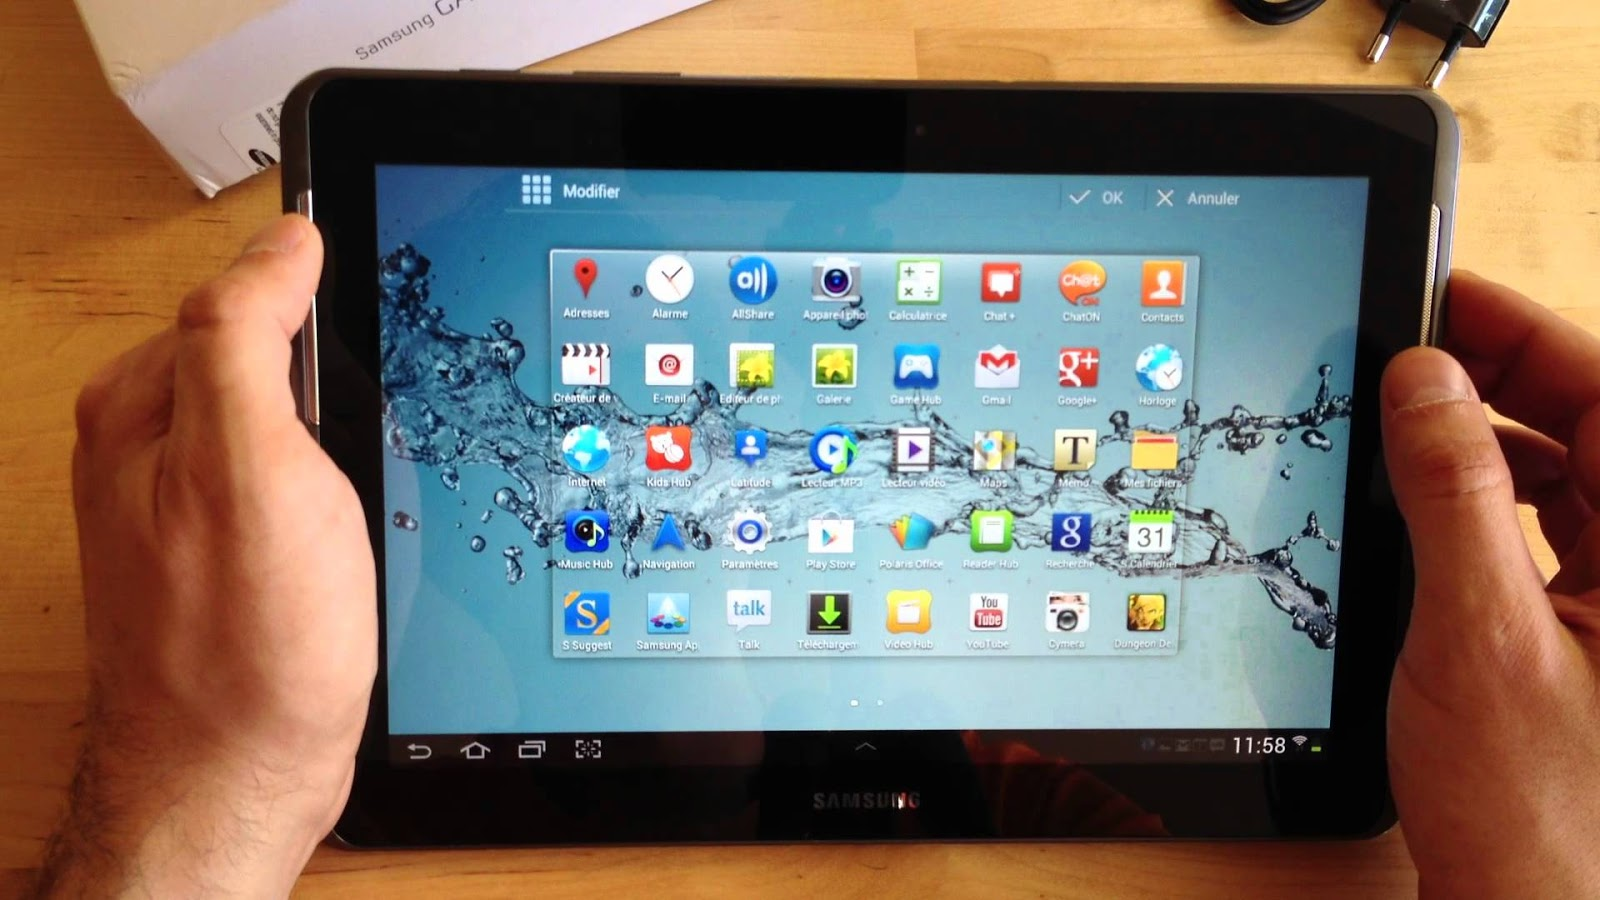 How To Update Galaxy Tab 2 101 P5110 Android 601 Marshmallow CandySiX Custom ROM